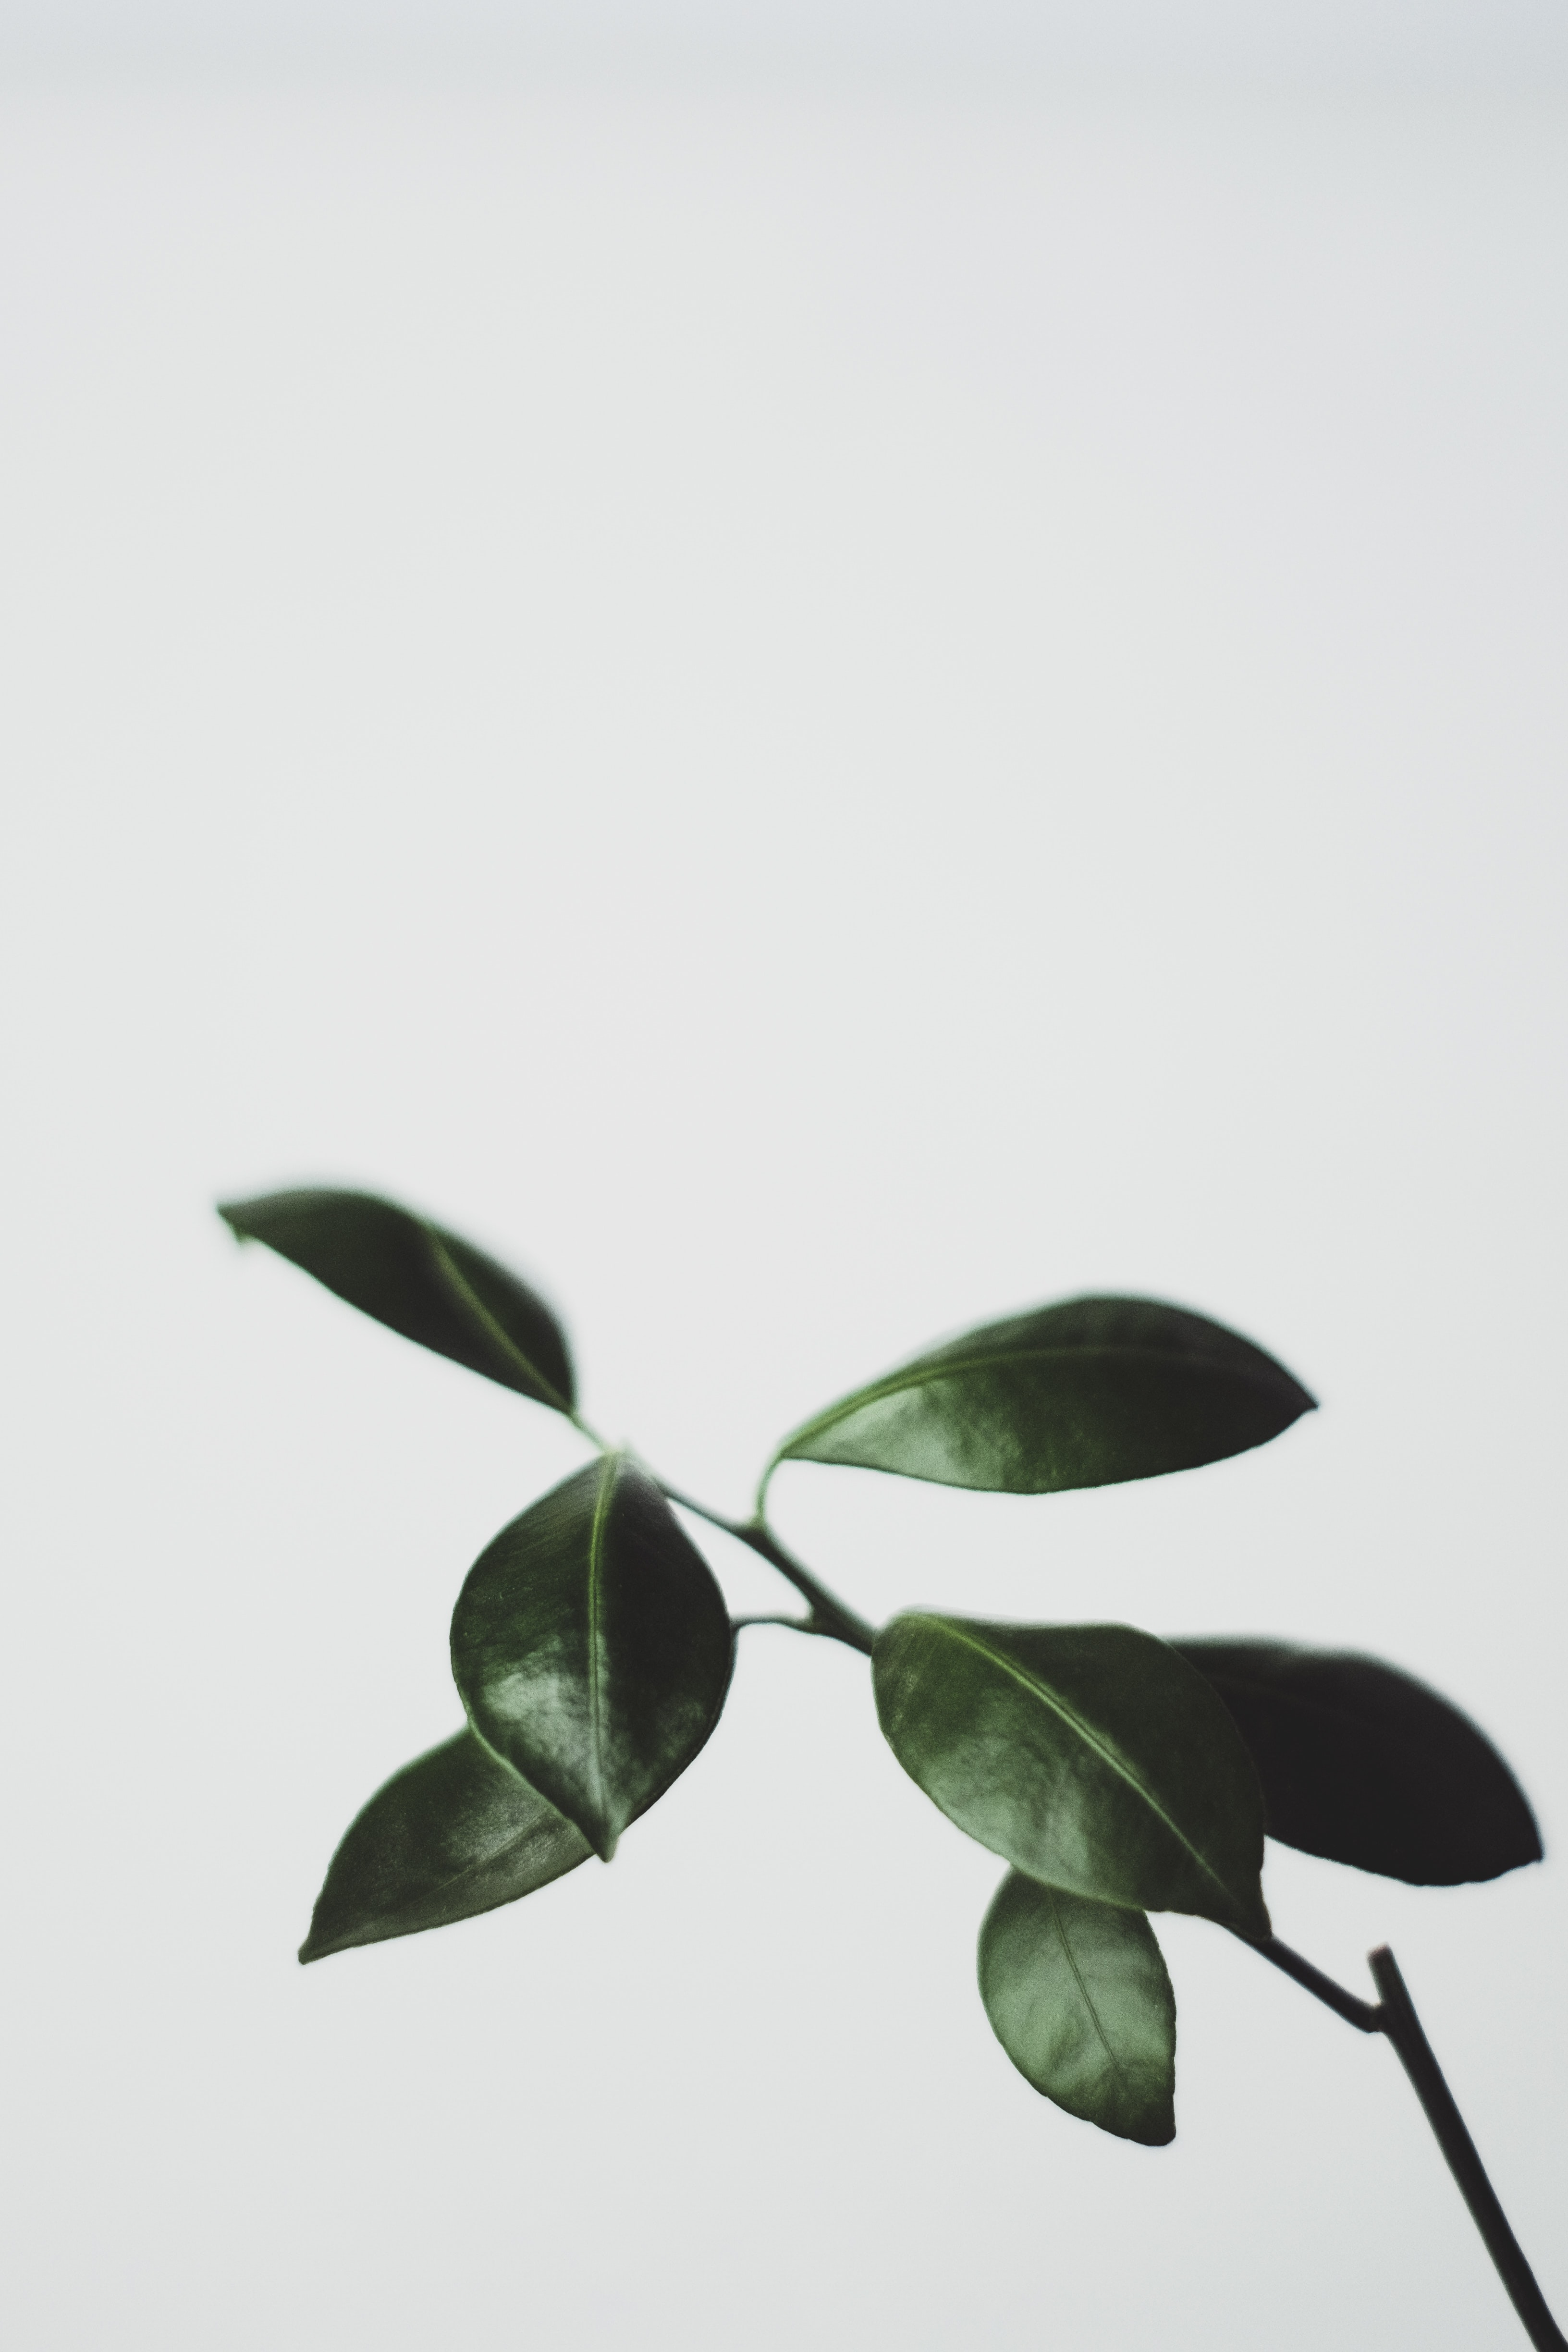 green leaf plant closeup photography